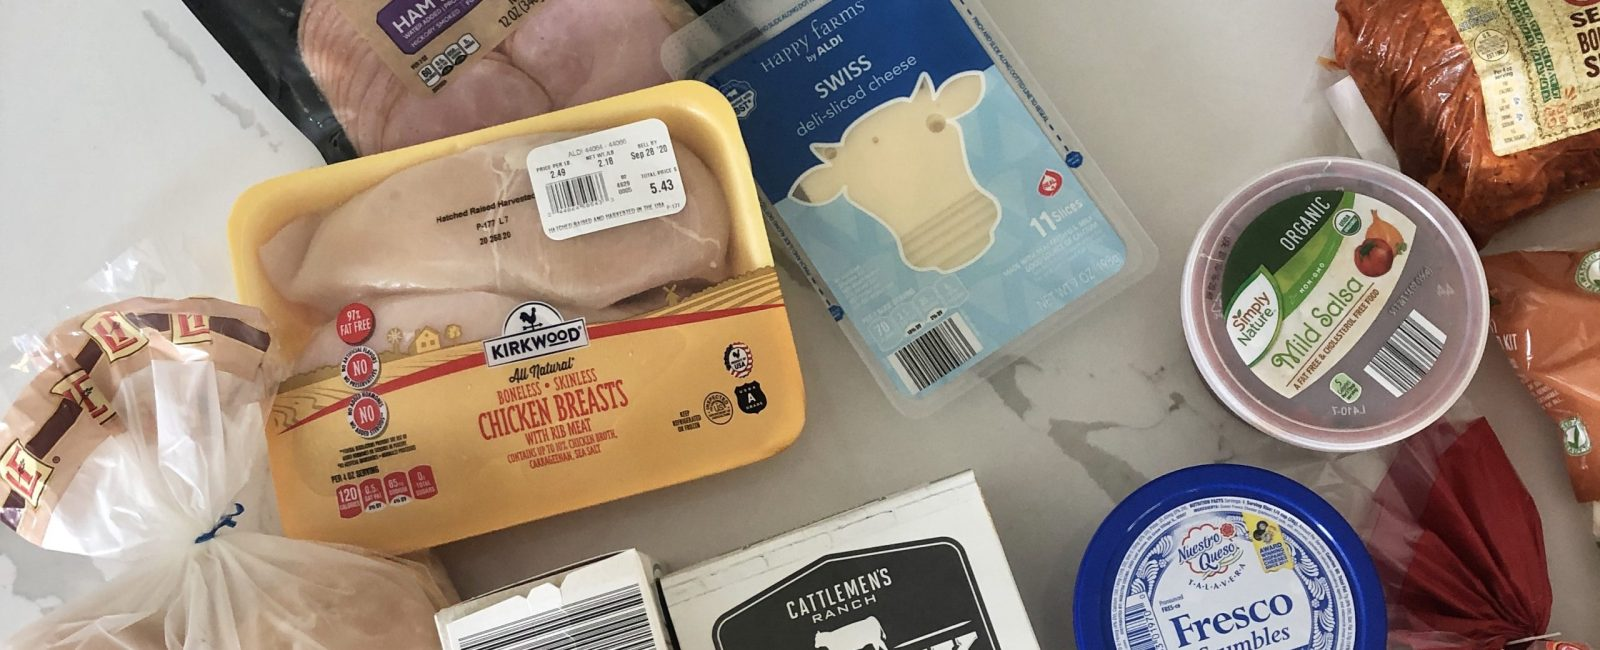 5 Delicious Aldi Dinner Ideas for Under $60